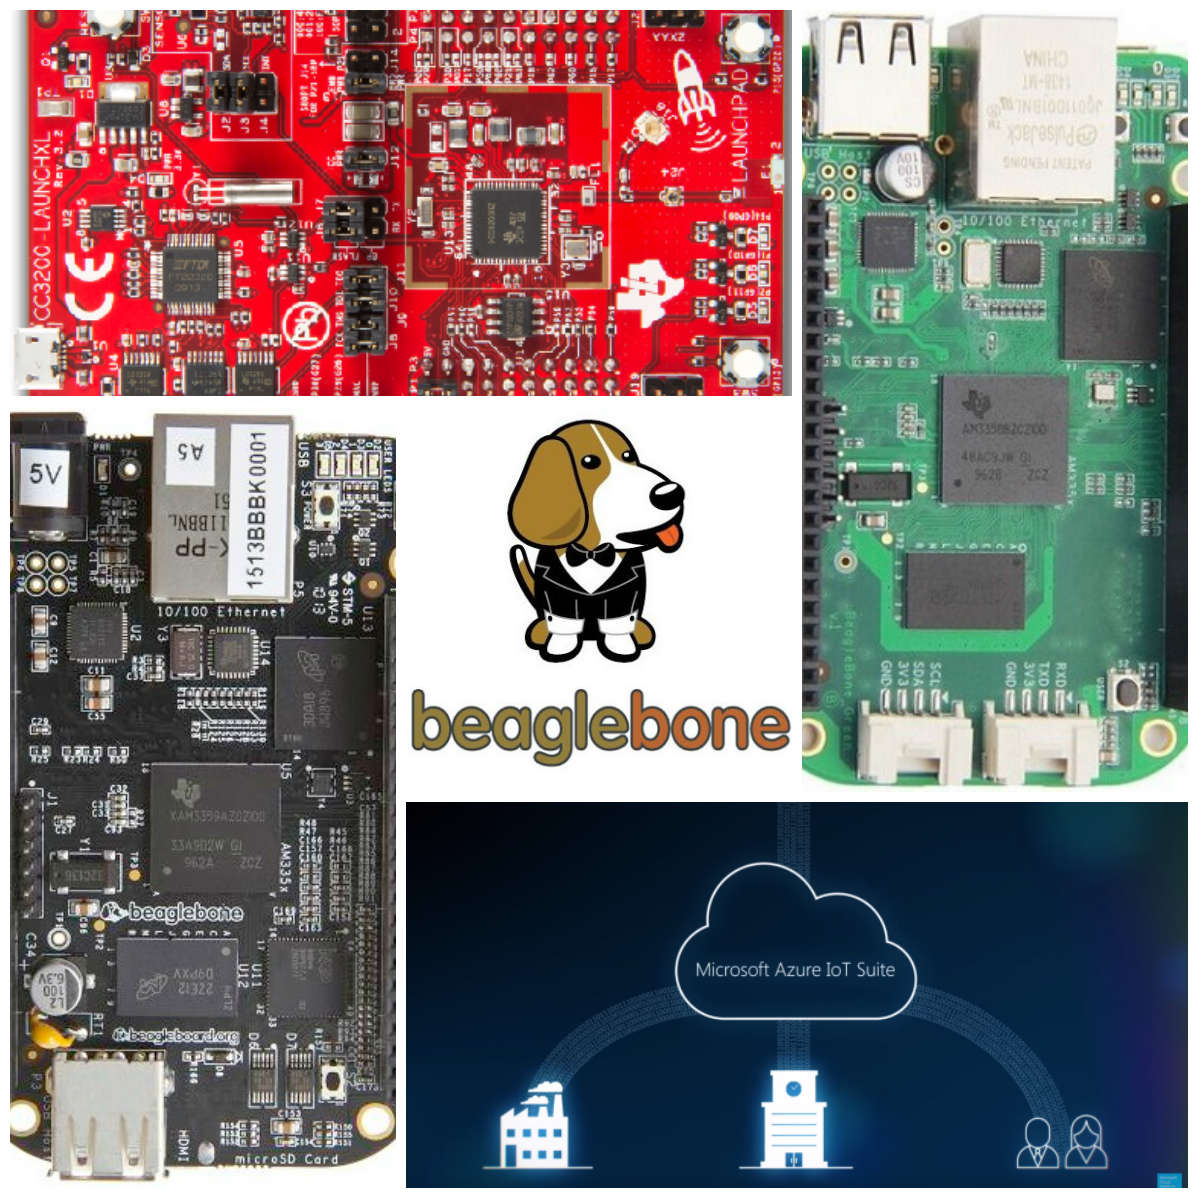 Collage Internet Of Things Iot India Electronic Circuit Kits Simplelink Wi Fi Cc3200 Wireless Mcu Launchpad Kit And Sitara Am335x